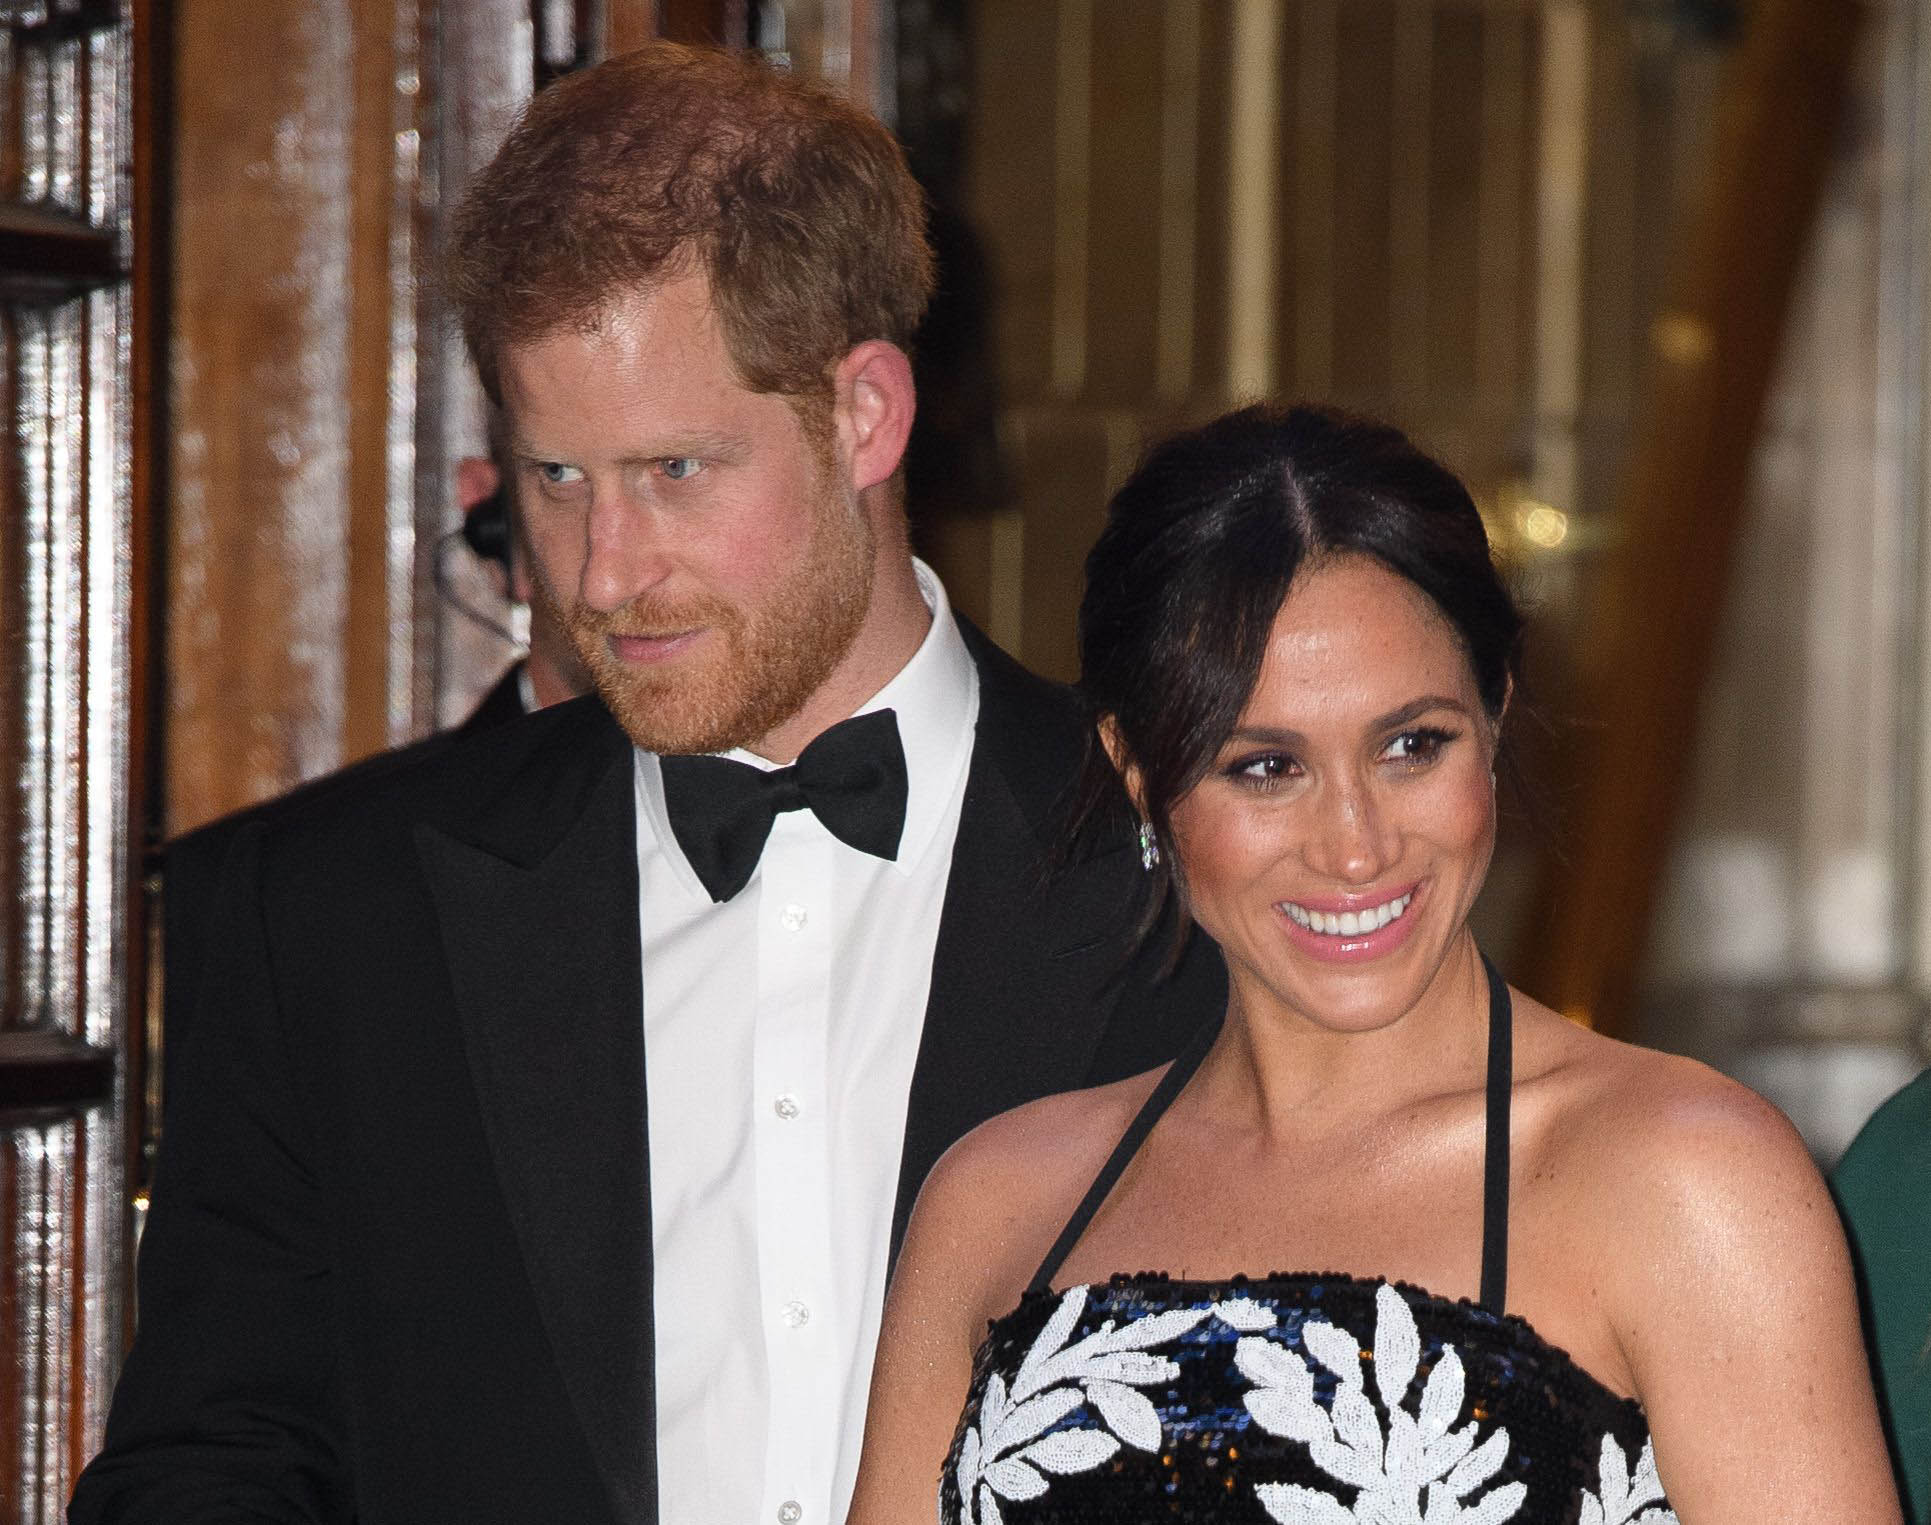 Everything we know about Prince Harry and Meghan Markle's baby